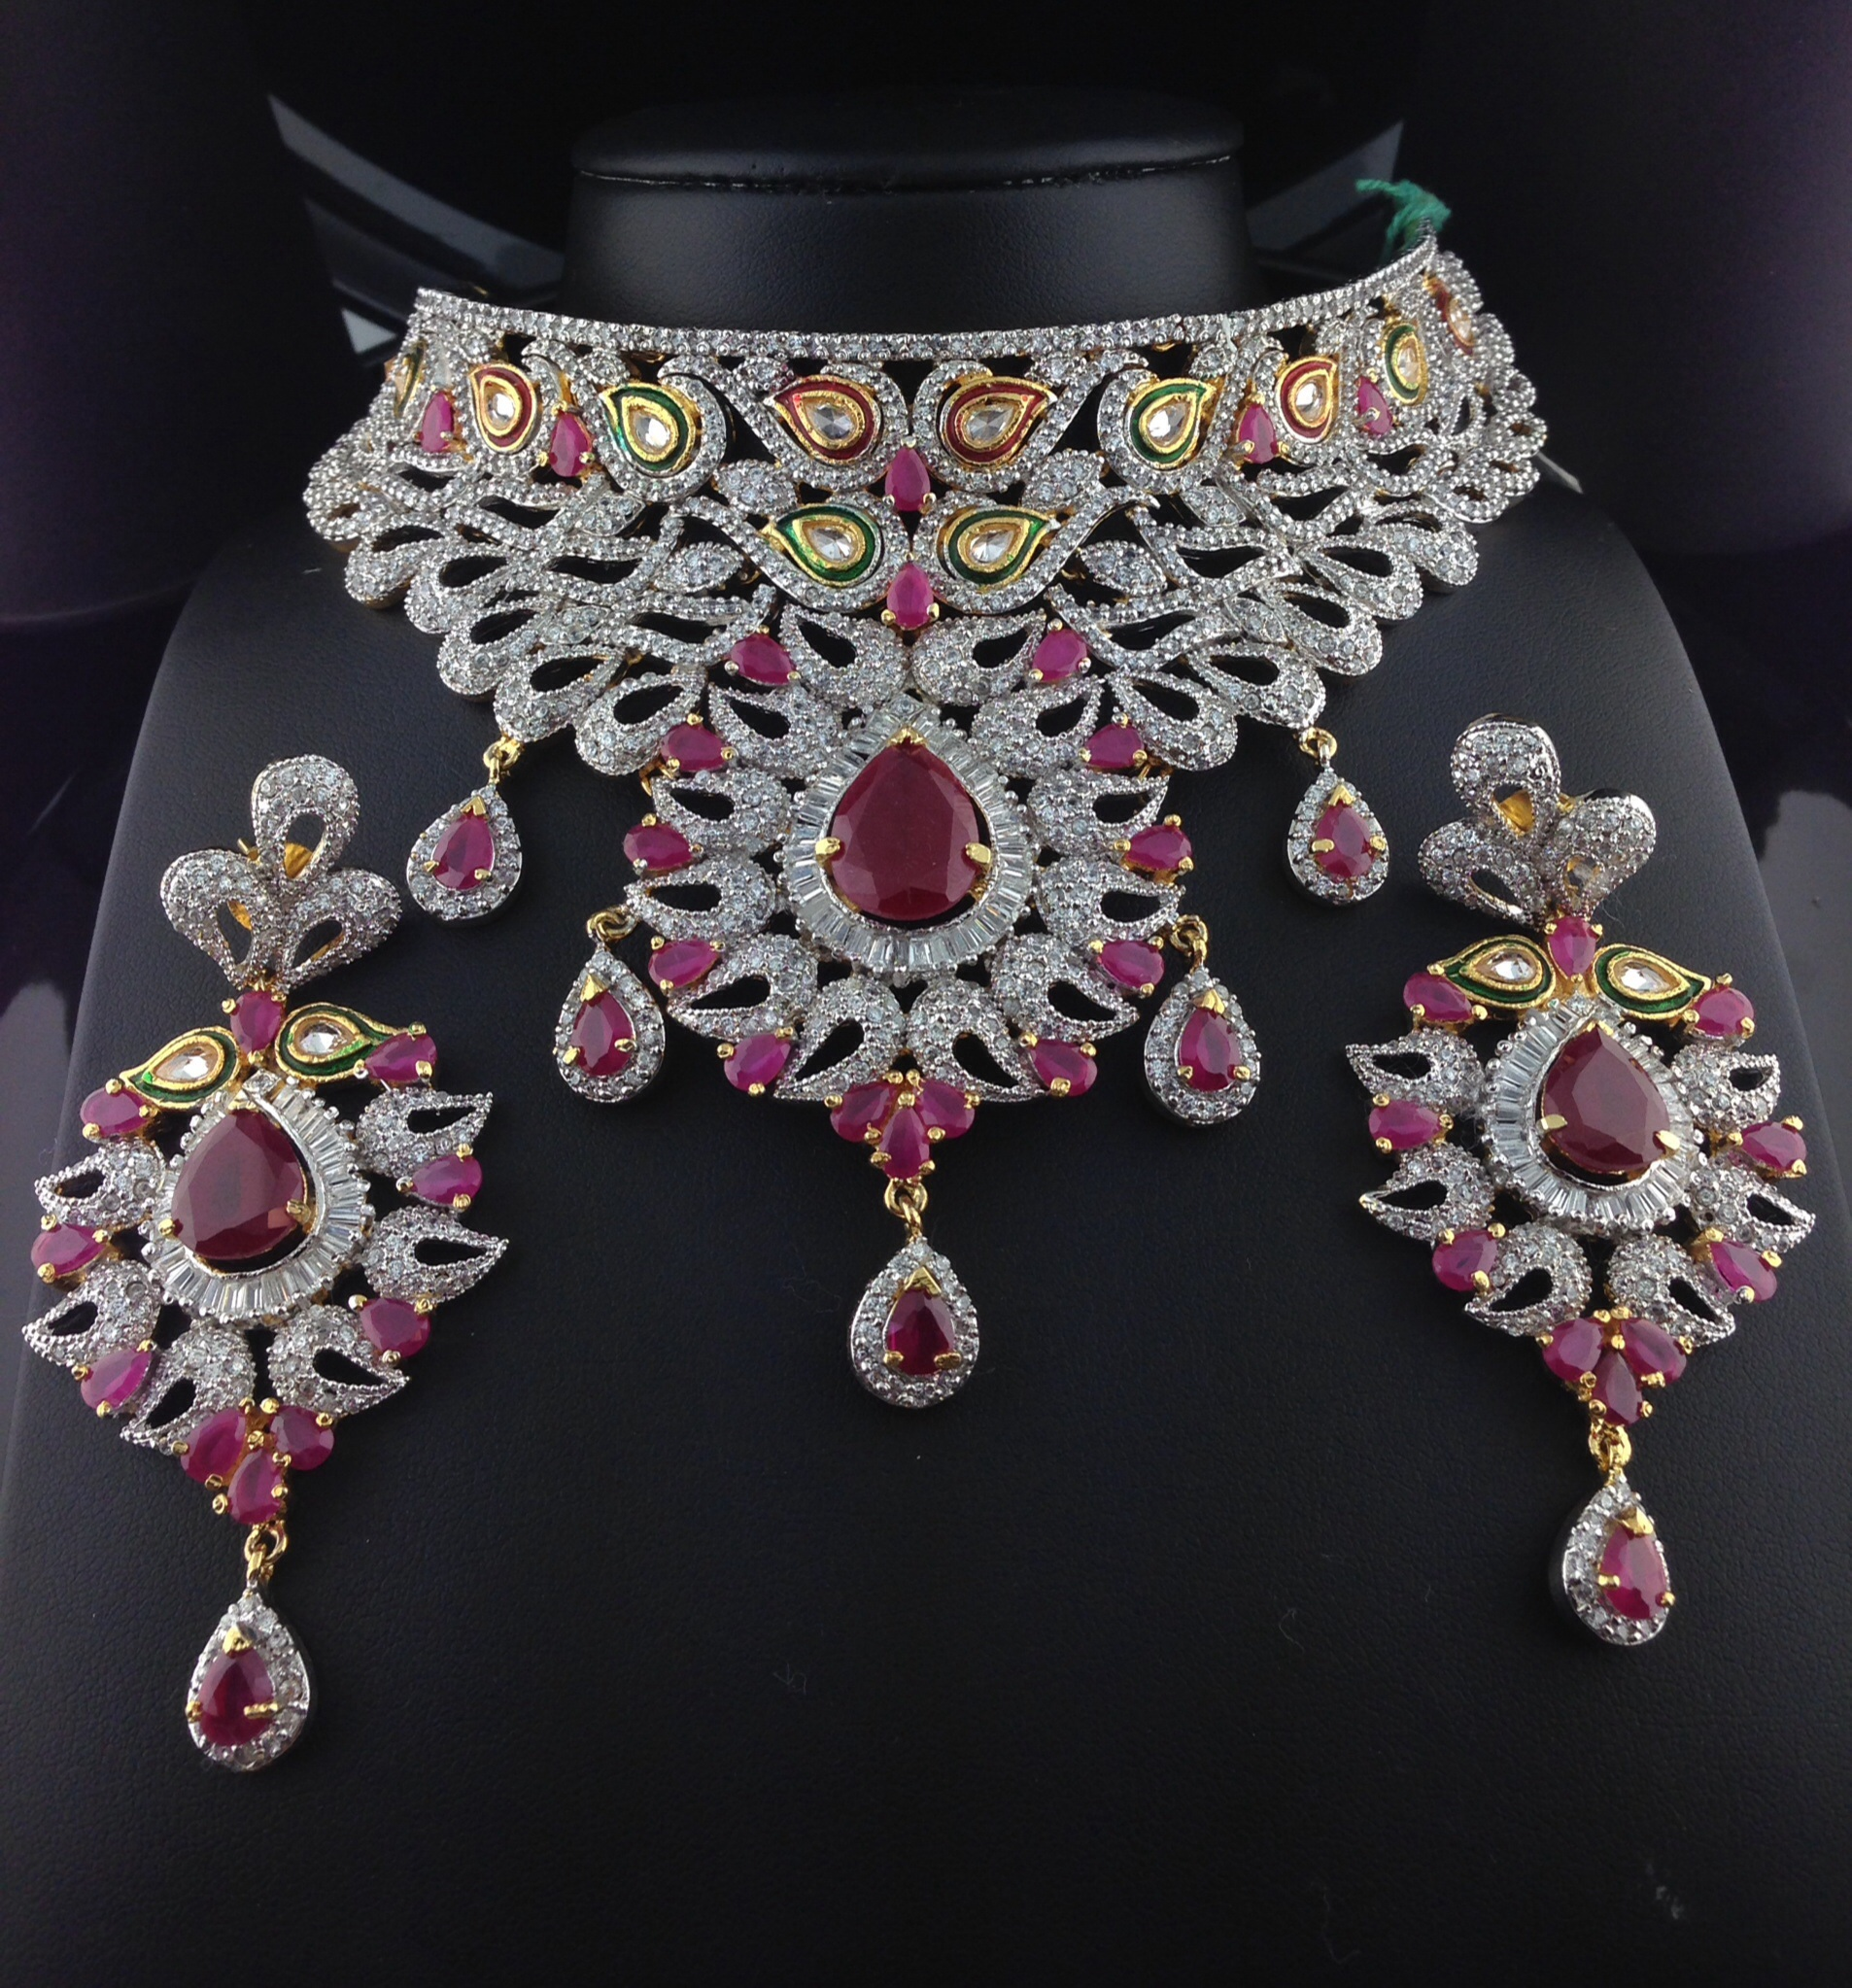 Stunning American Diamond Bridal Set With Polki Cut Rubies